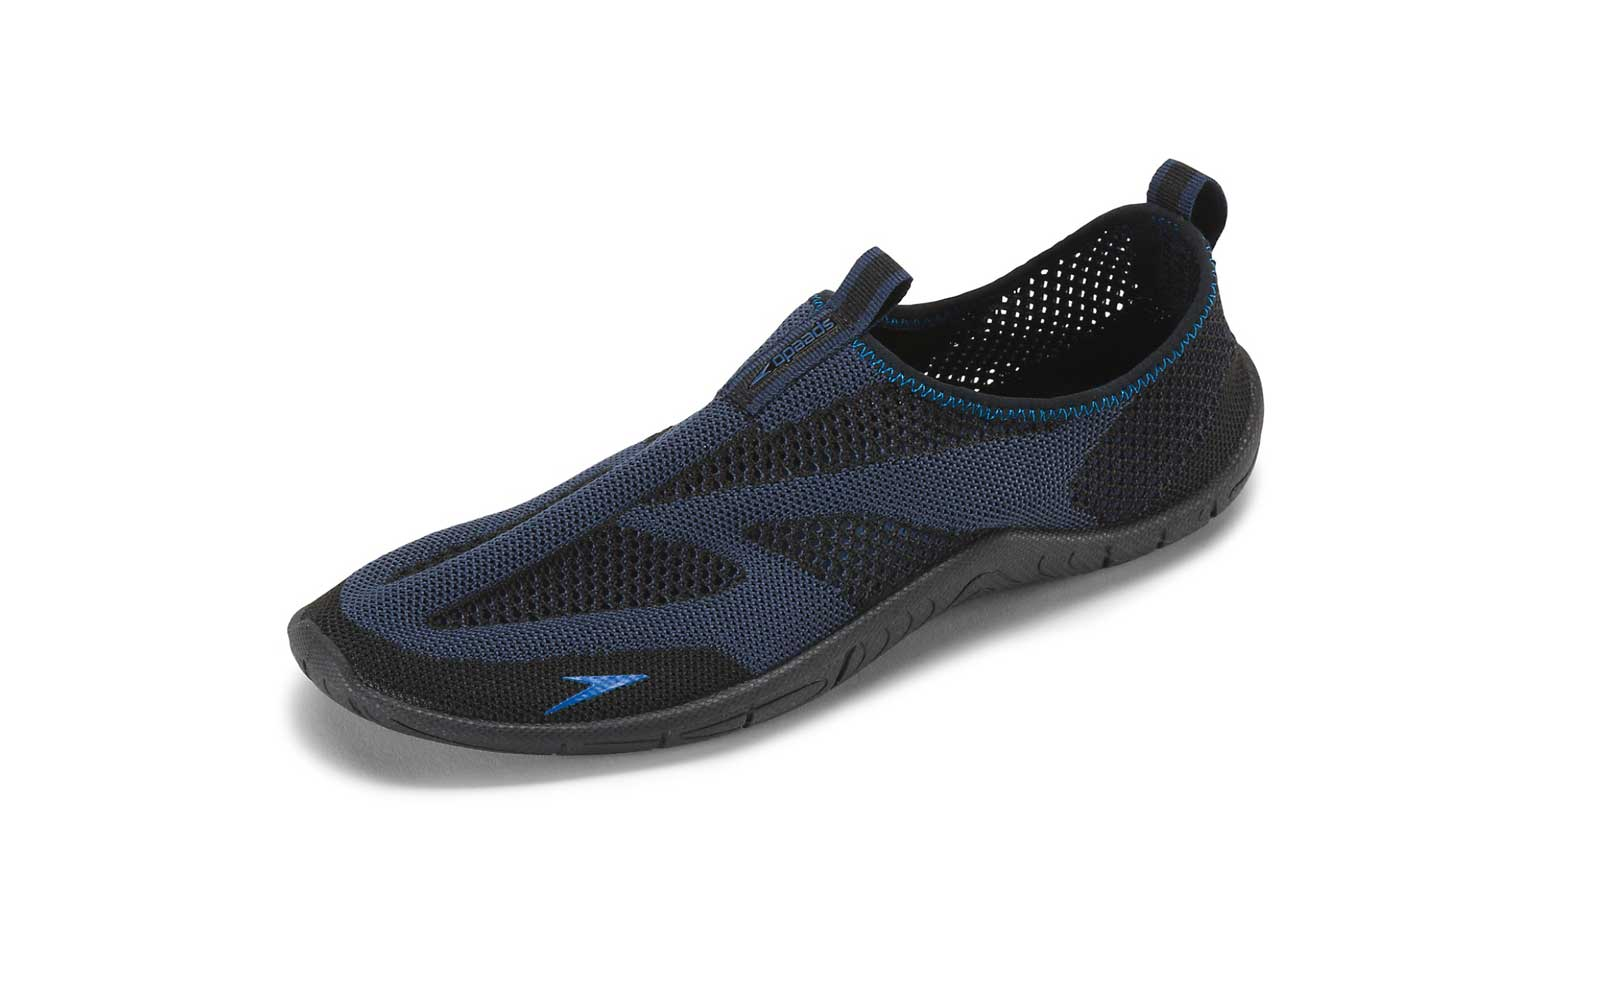 ee63a5412d4a5 The Best Men s Water Shoes for 2019